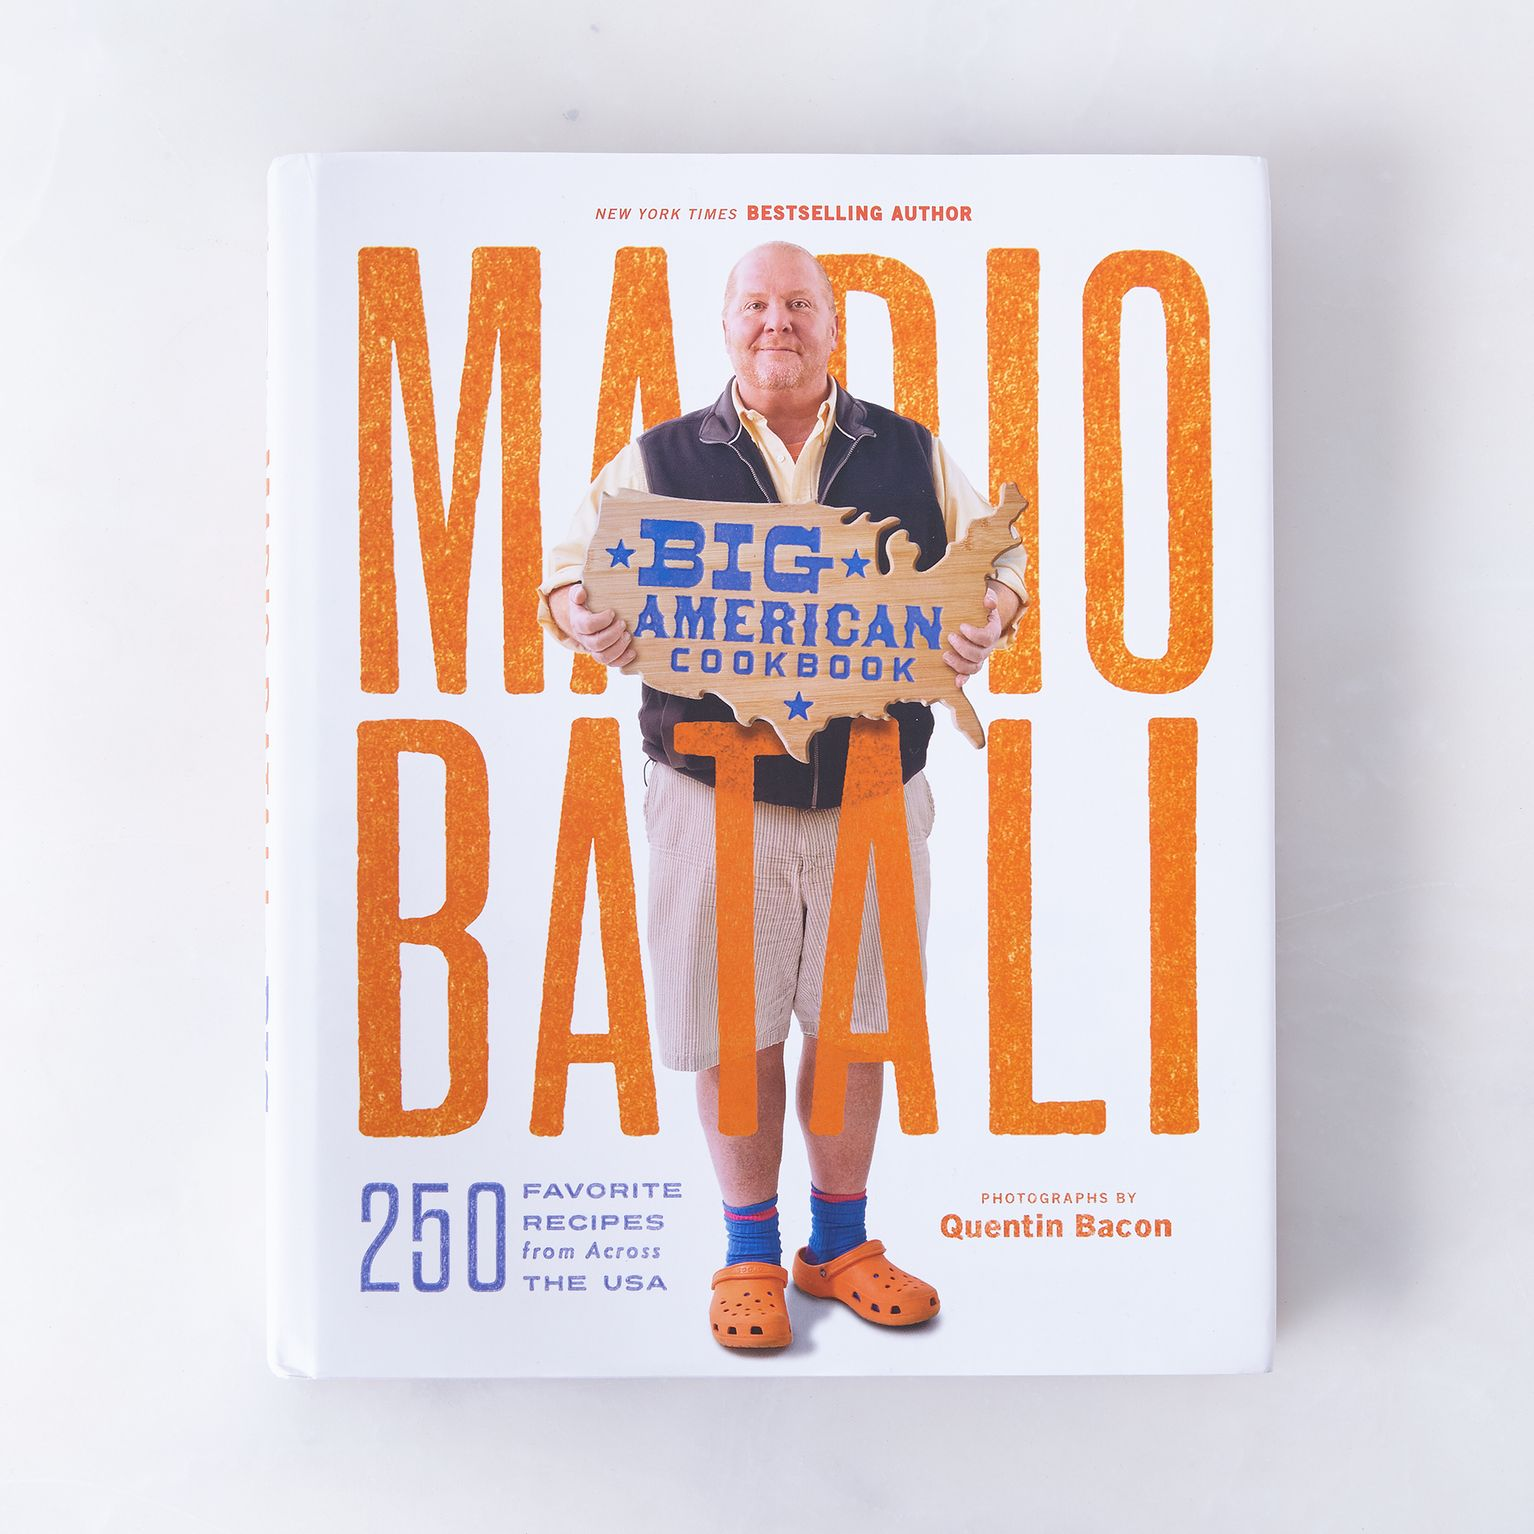 New Cookbook: Big American Cookbook: 250 Favorite Recipes from Across the USA by Mario Batali